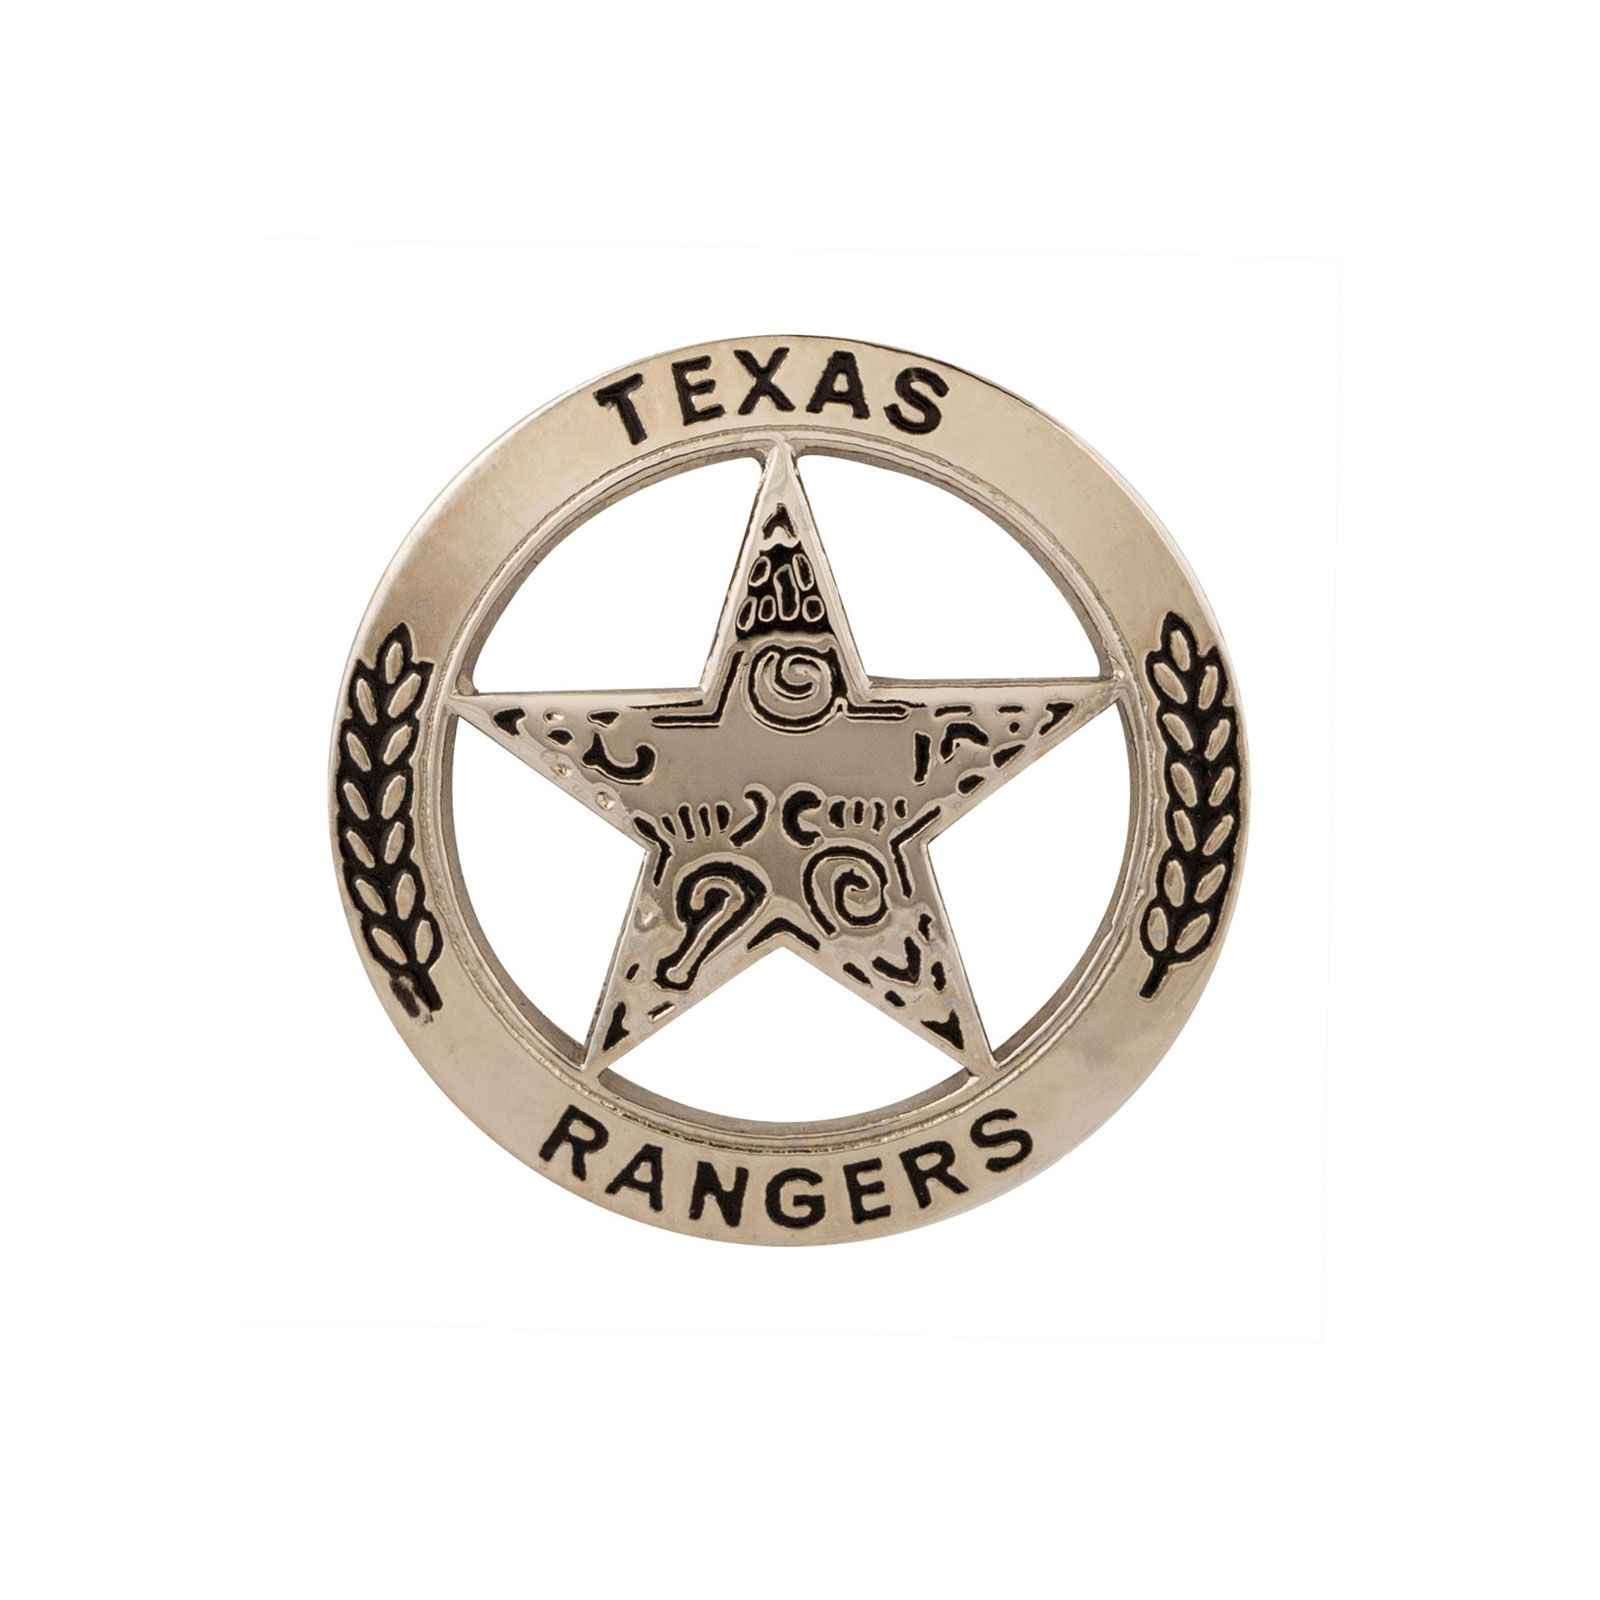 Texas Ranger Lapel Pin - Silver